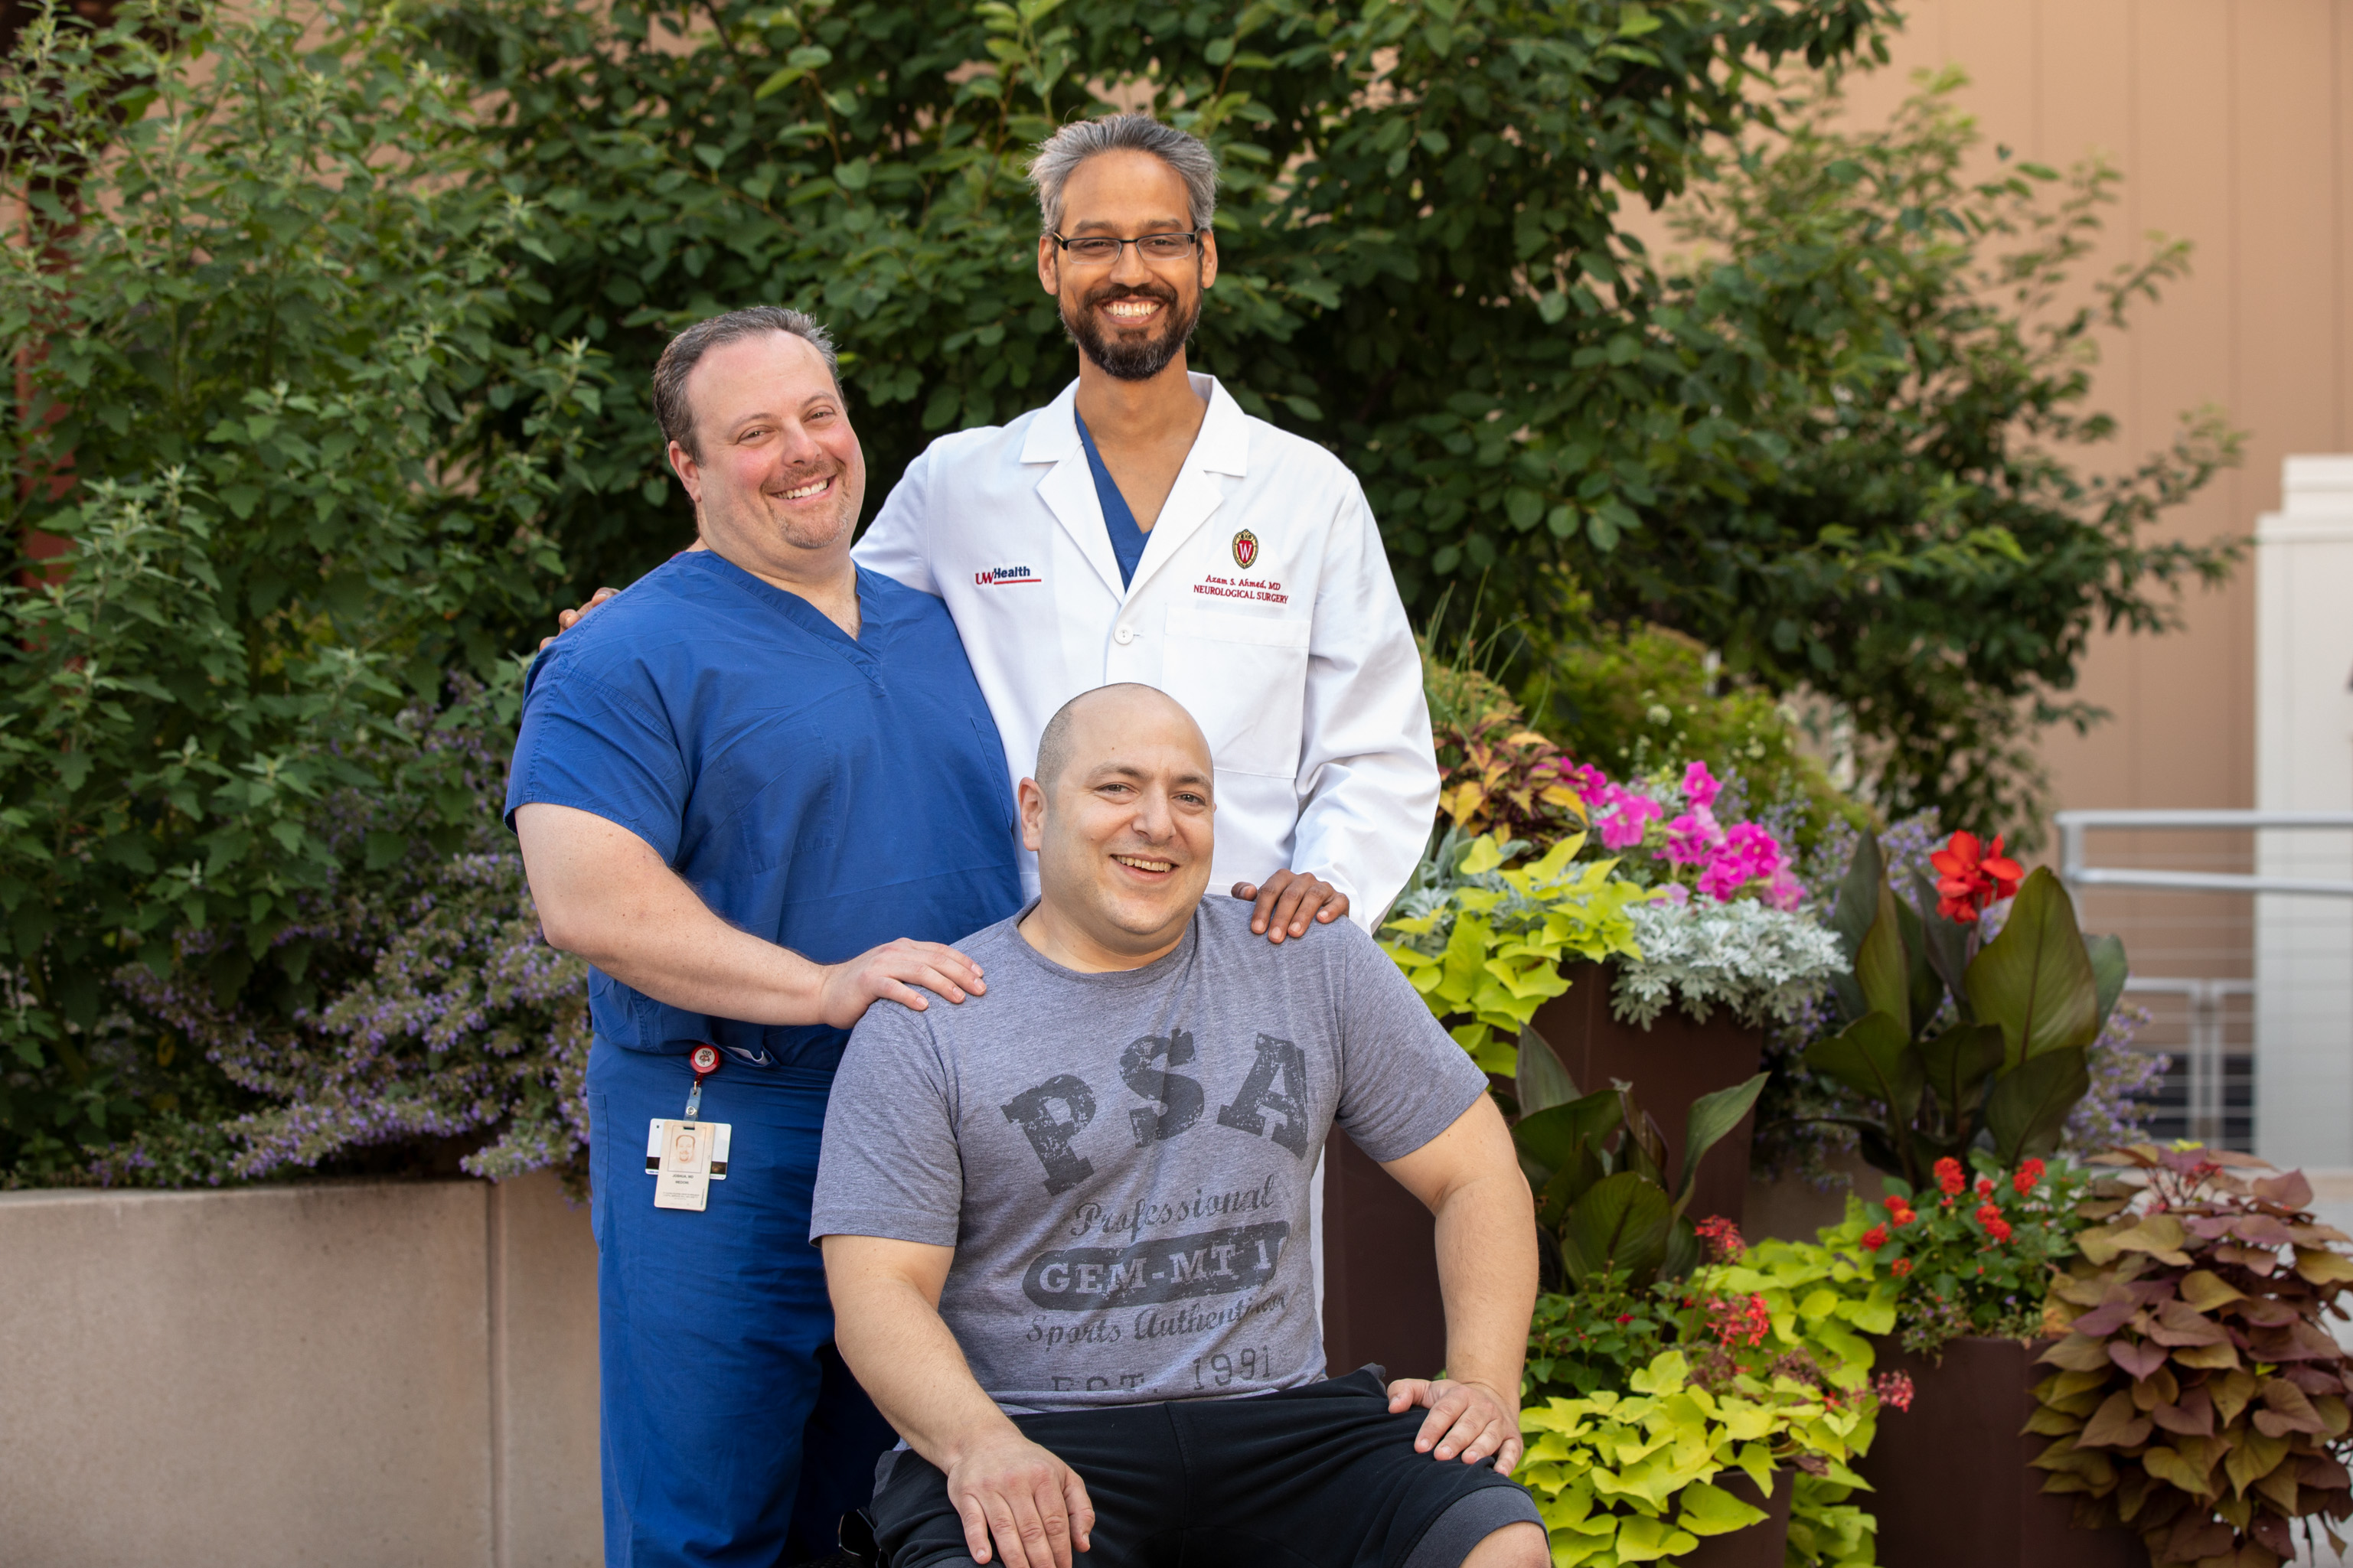 Jordan Dorf (seated) travelled from Denver to Madison to have his pituitary tumor removed by UW Health neurosurgeon Azam Ahmed, MD (standing, right). Jordan learned about Dr. Ahmed from UW Health neurosurgeon Josh Medow, MD (standing, left). Jordan and Dr. Medow have been friends since high school in Skokie, IL.